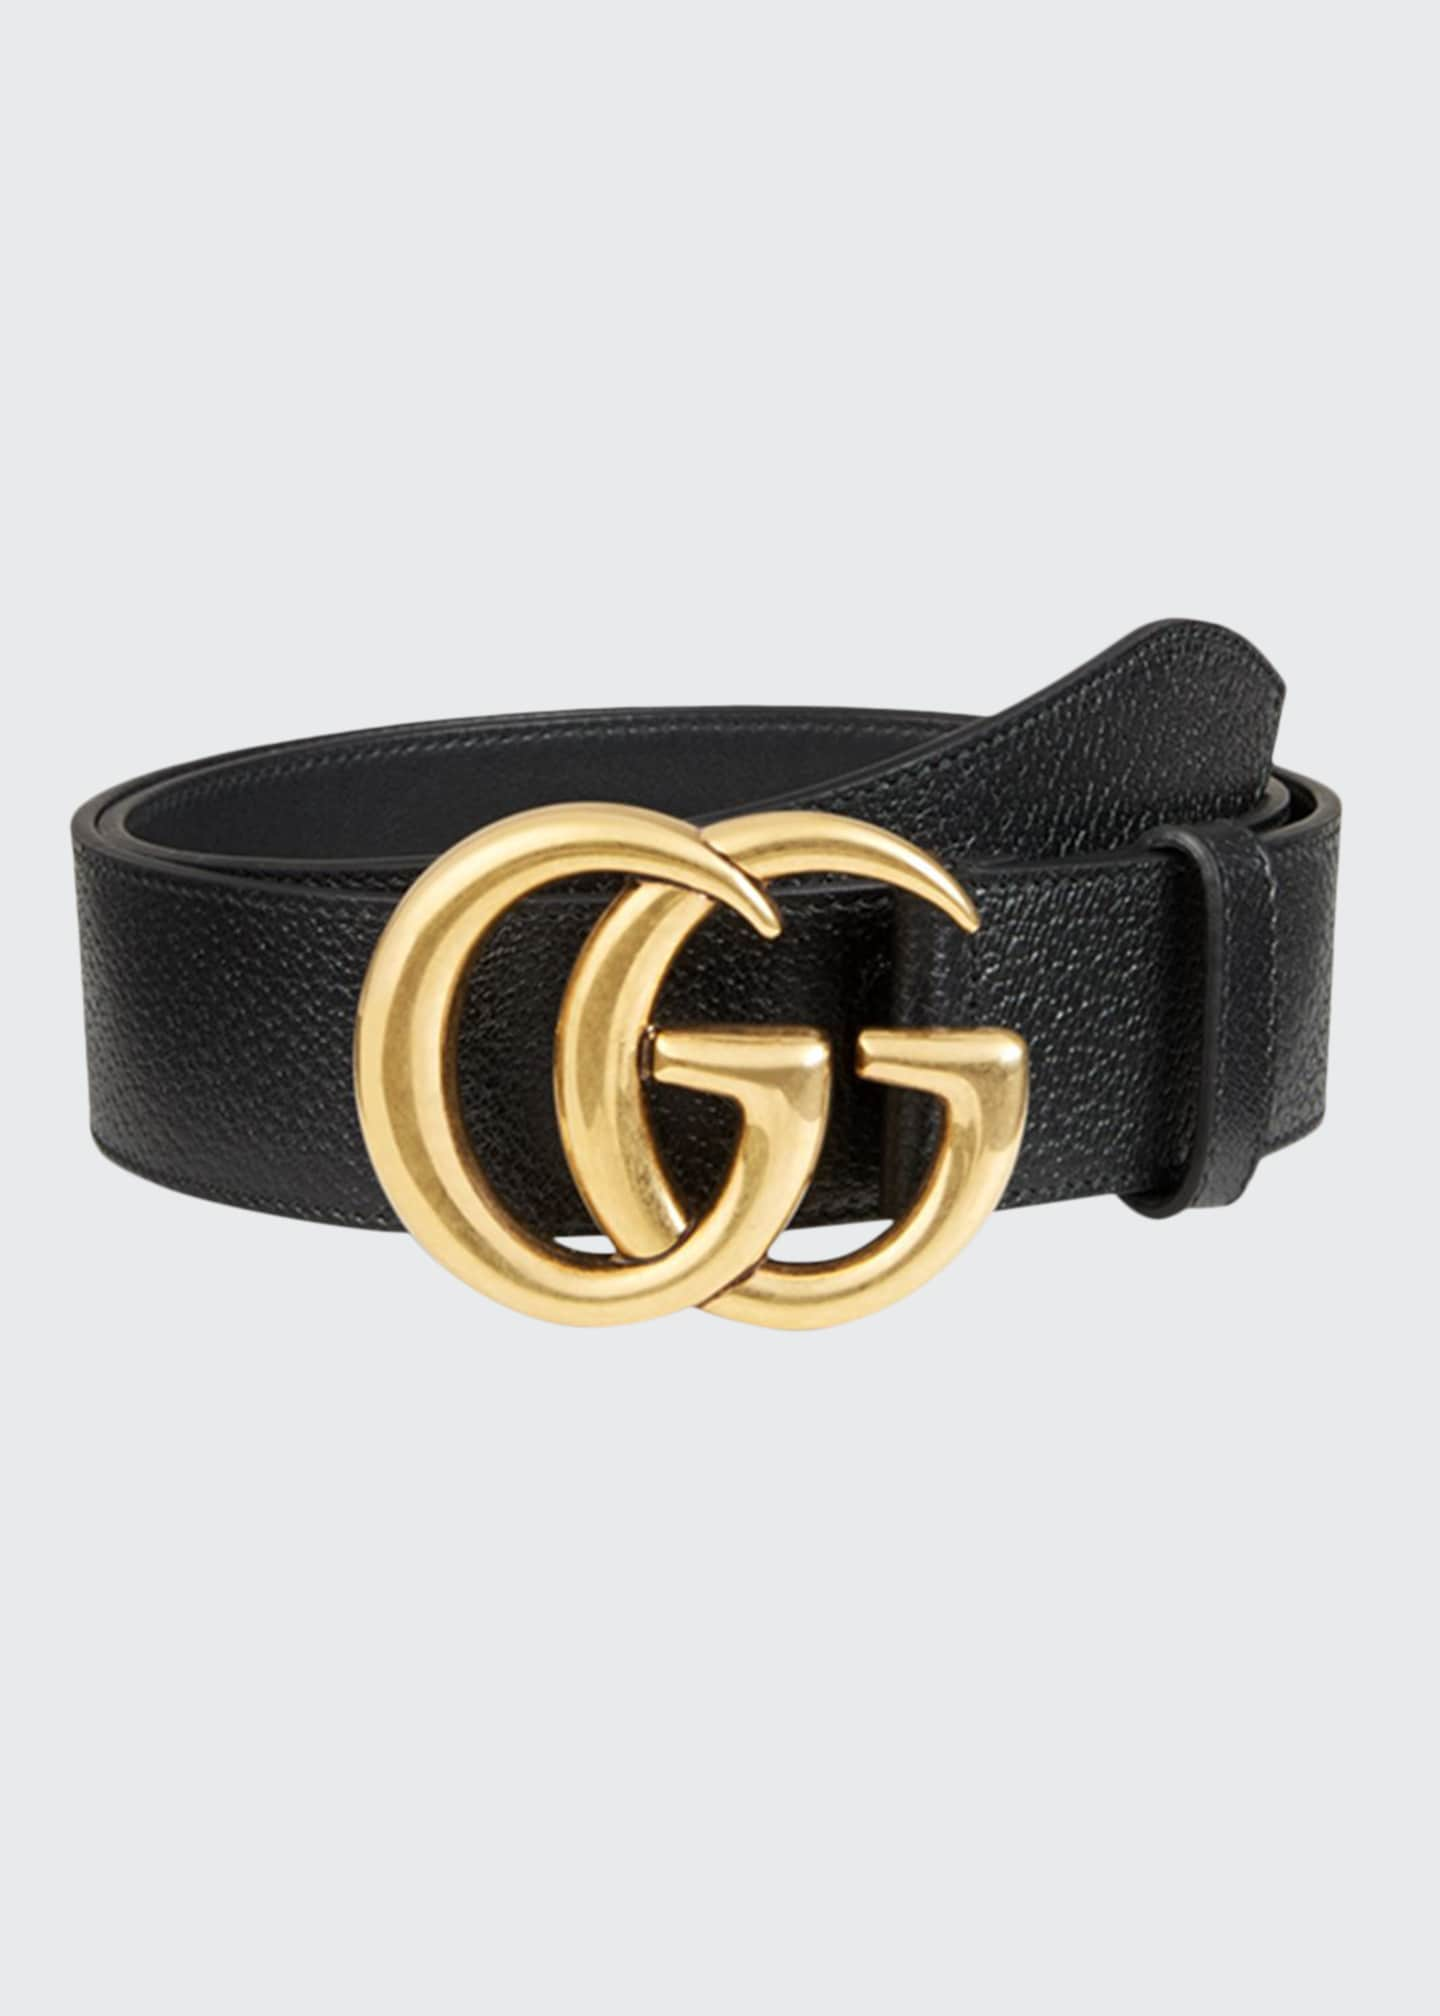 Gucci Men's Leather Belt with Double-G Buckle